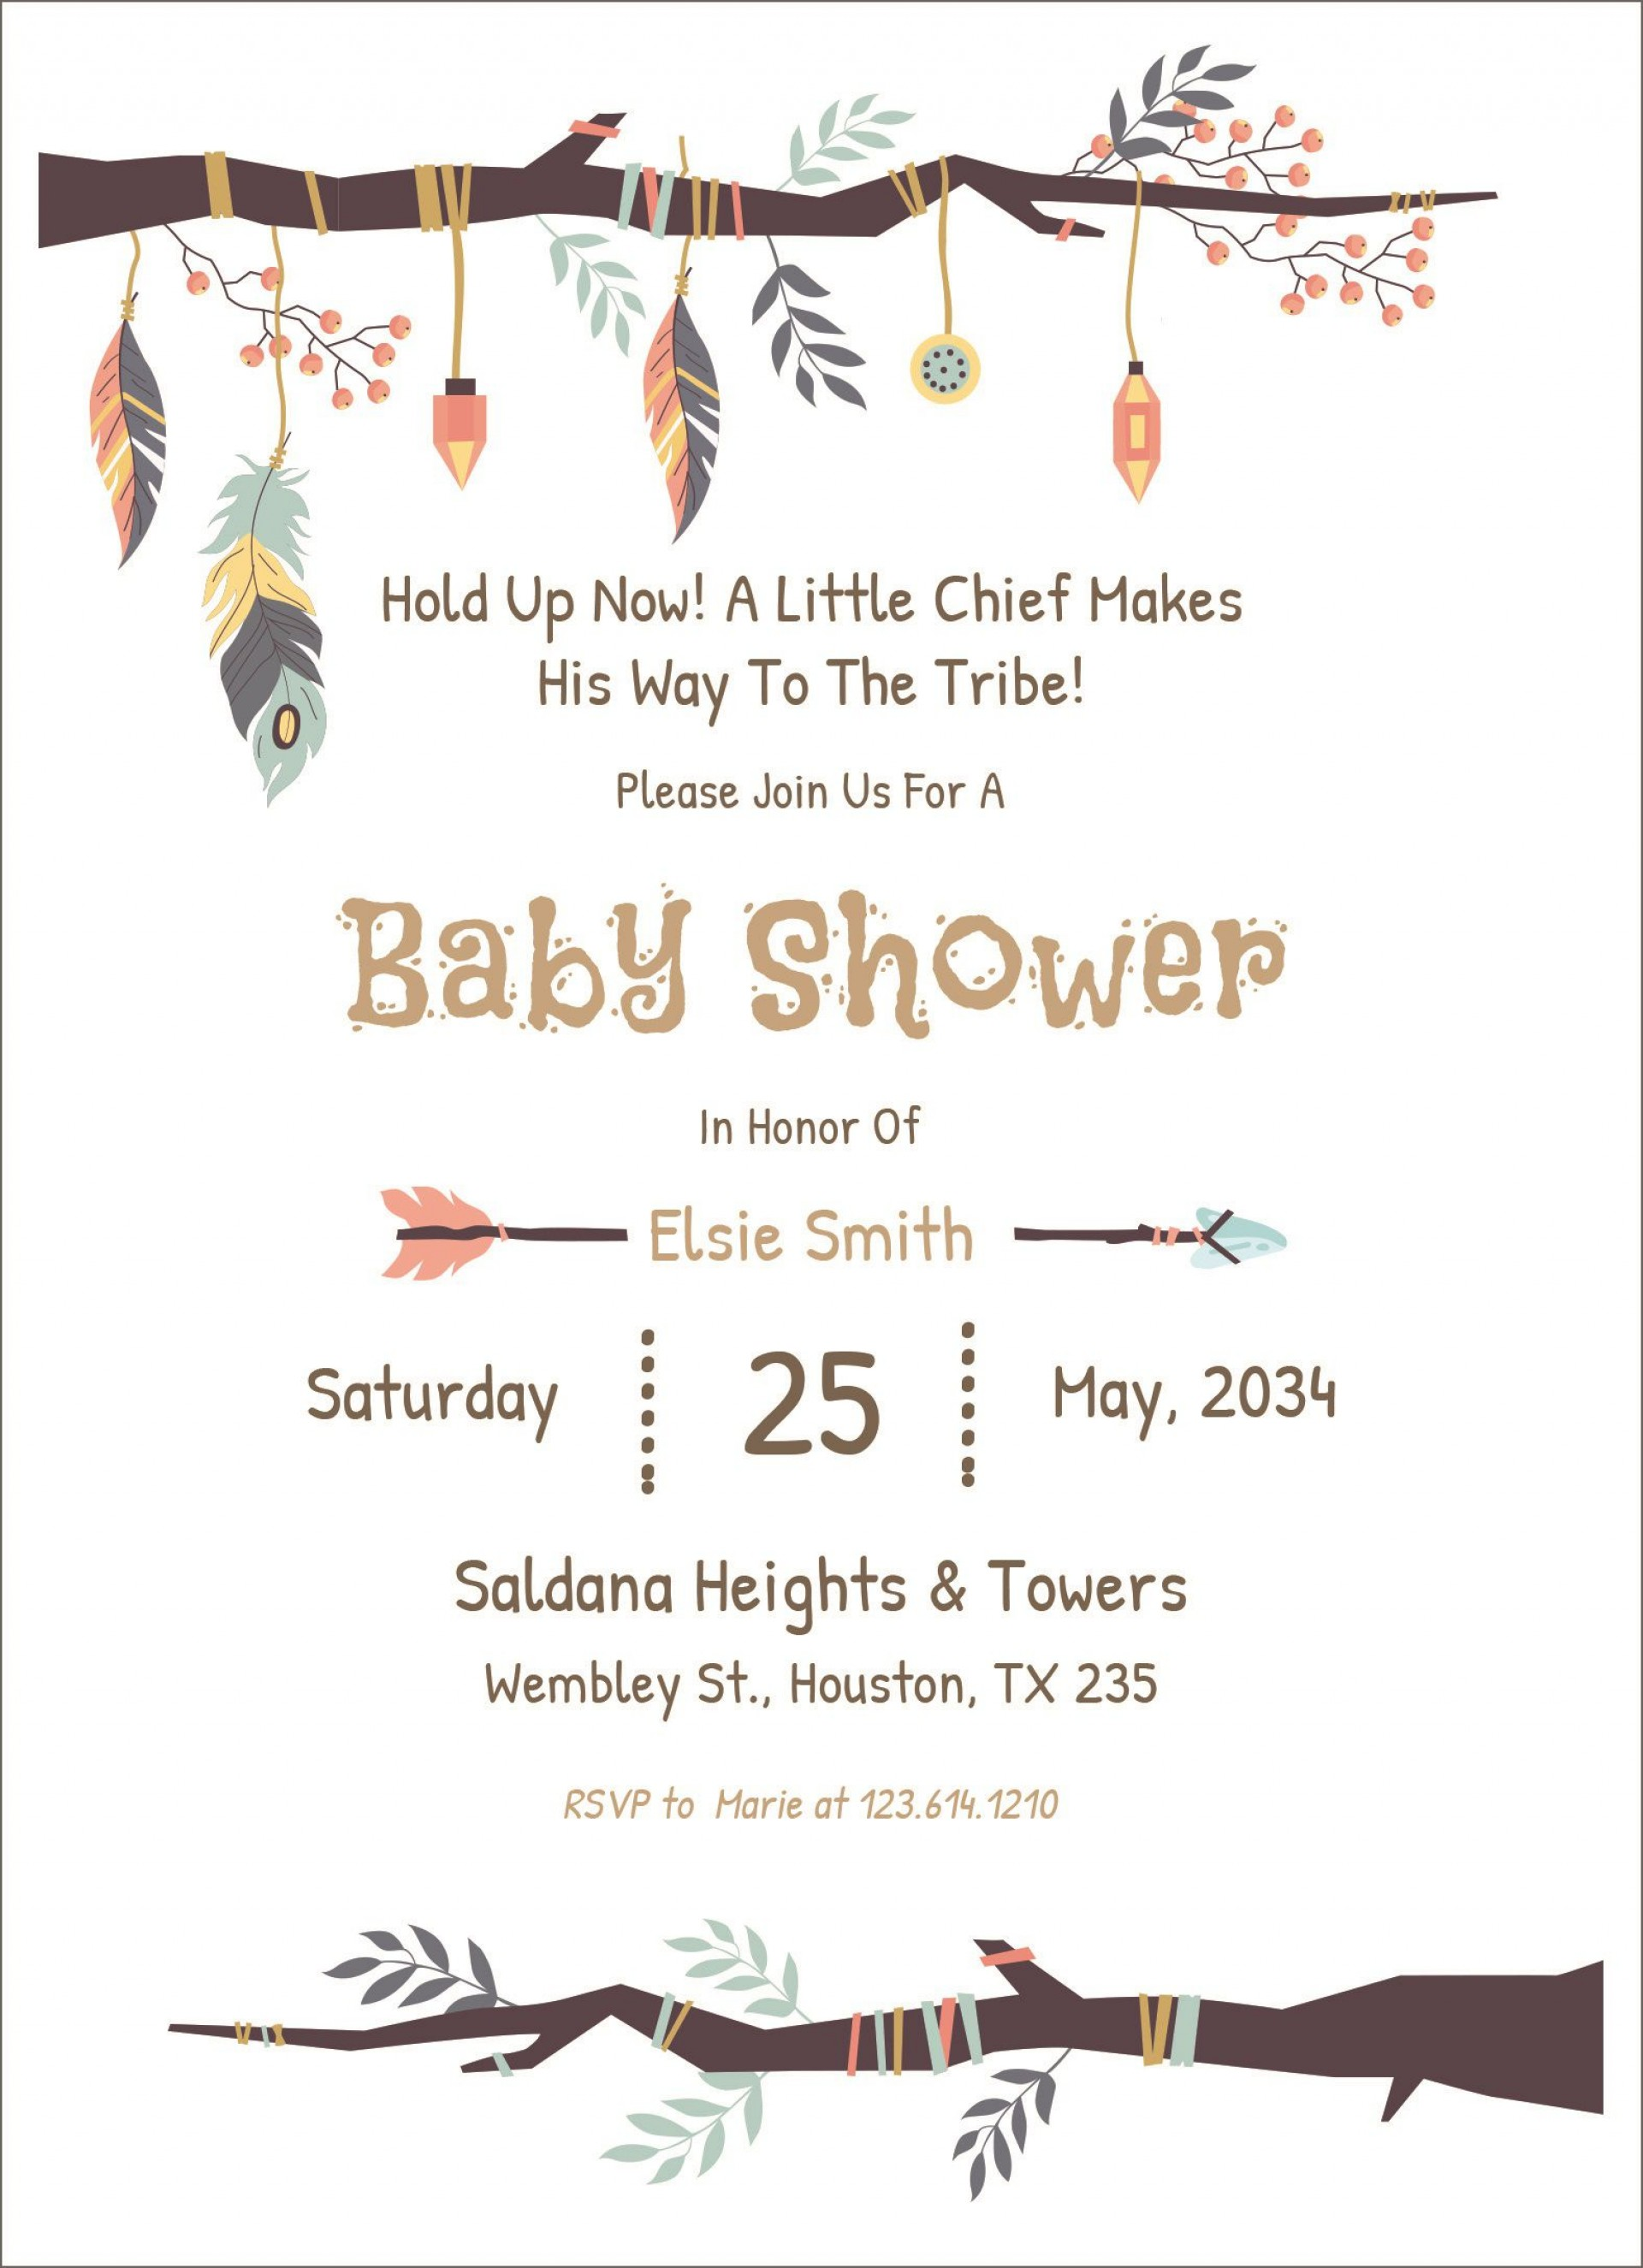 004 Rare Diy Baby Shower Invitation Template Highest Clarity  Templates Diaper Free1920